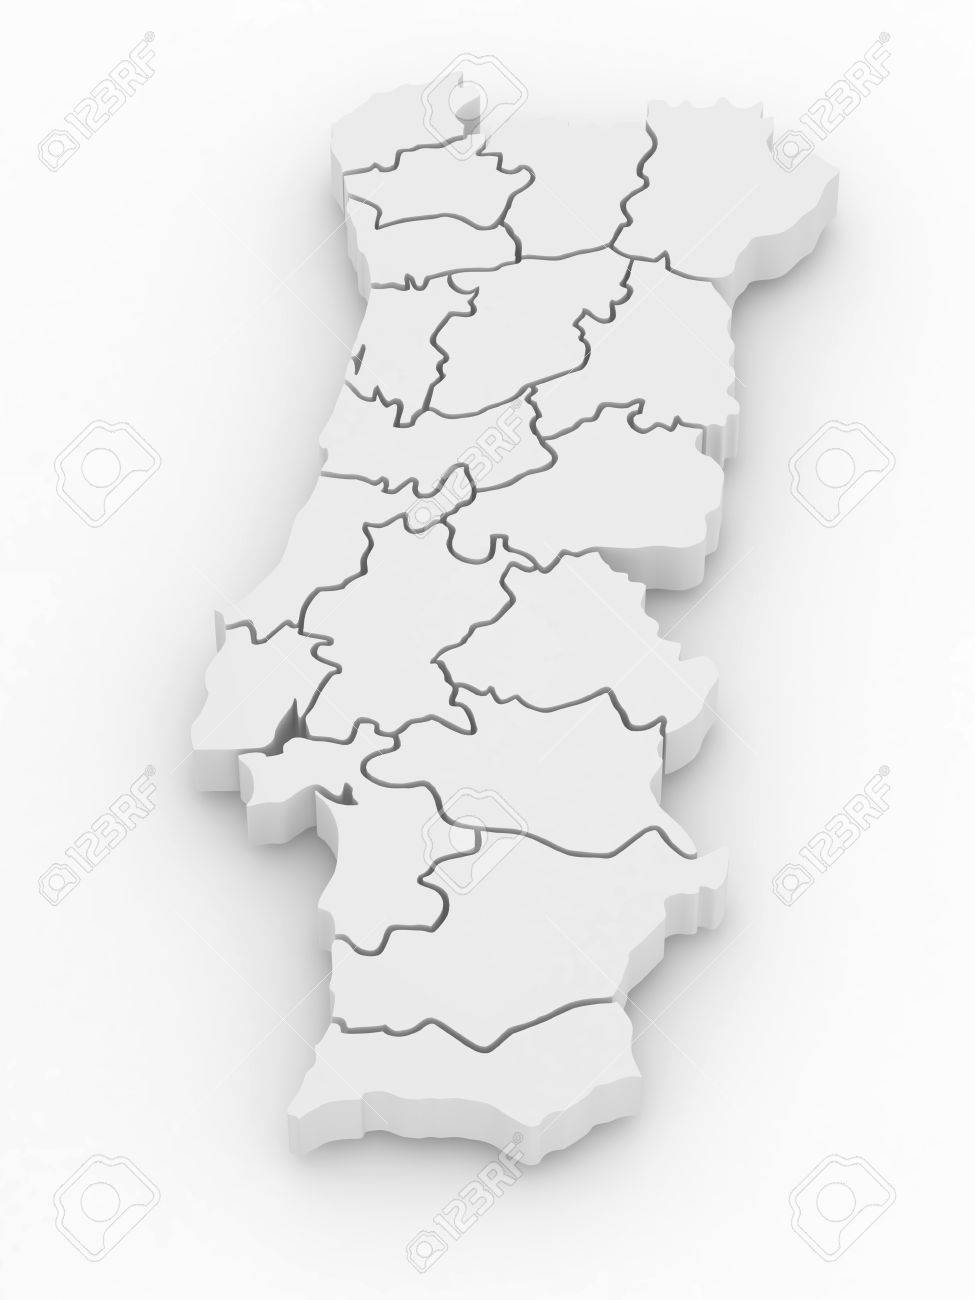 Threedimensional Map Of Portugal On White Isolated Background - Portugal map black and white